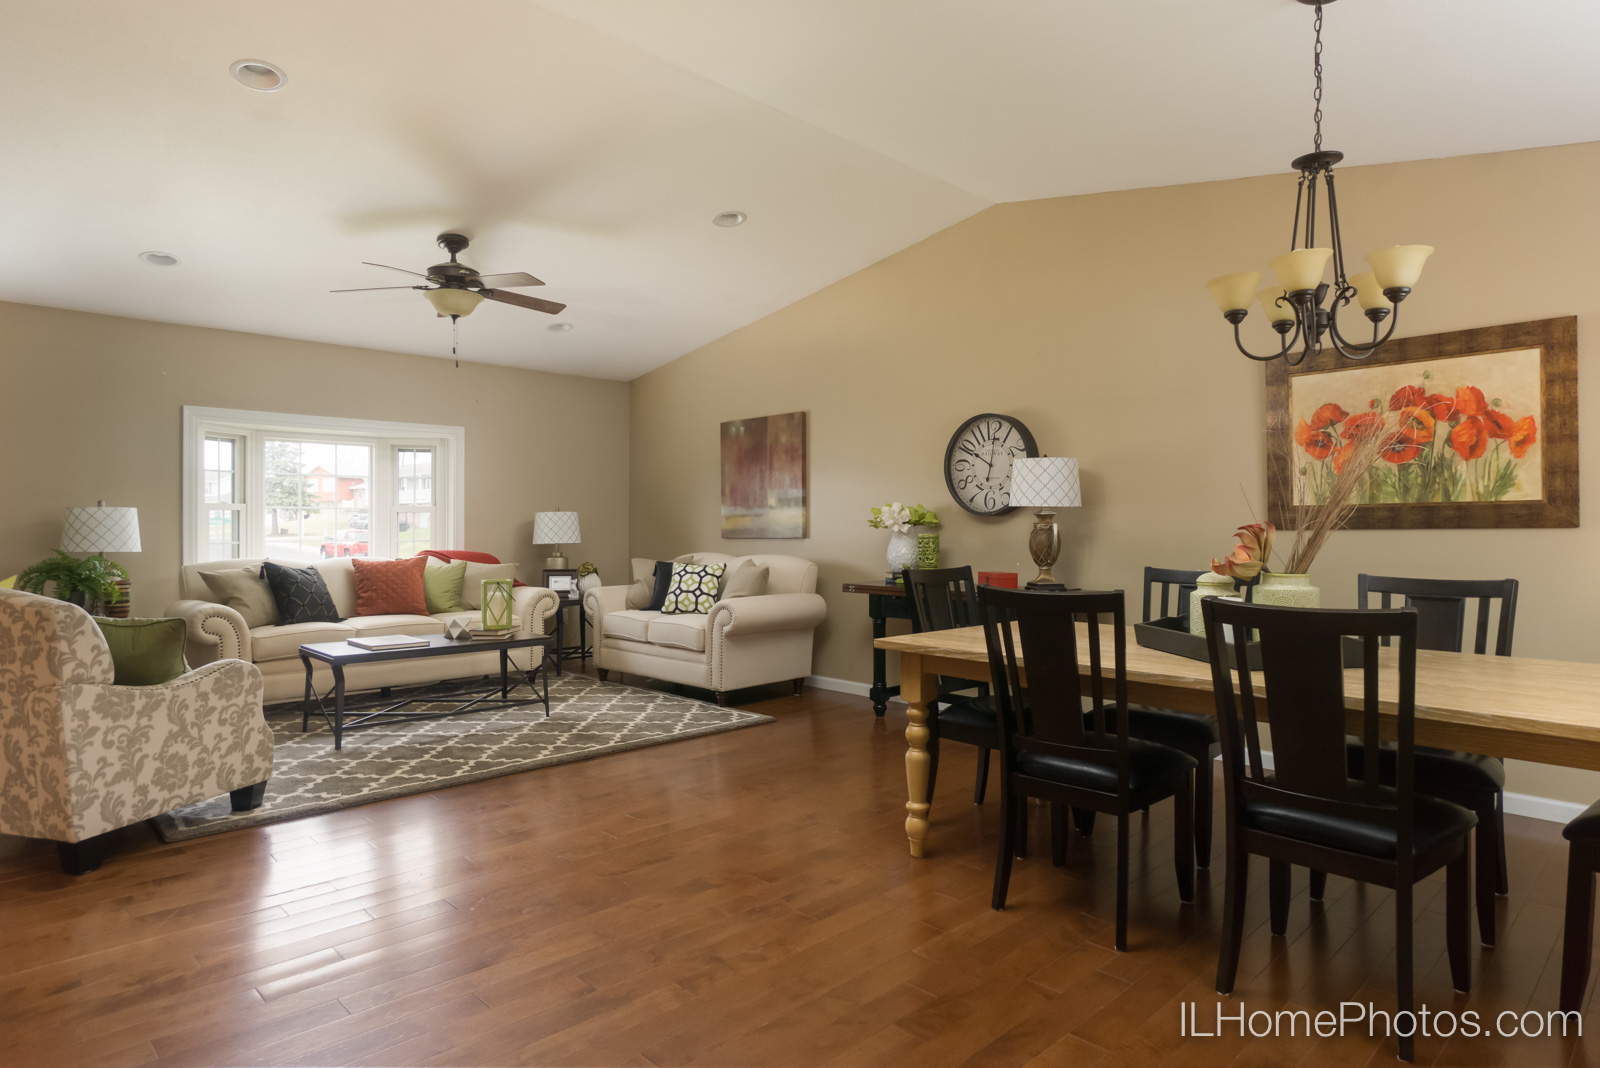 Interior living room and dining room photograph for real estate :: Illinois Home Photography by Michael Gowin, Lincoln, IL